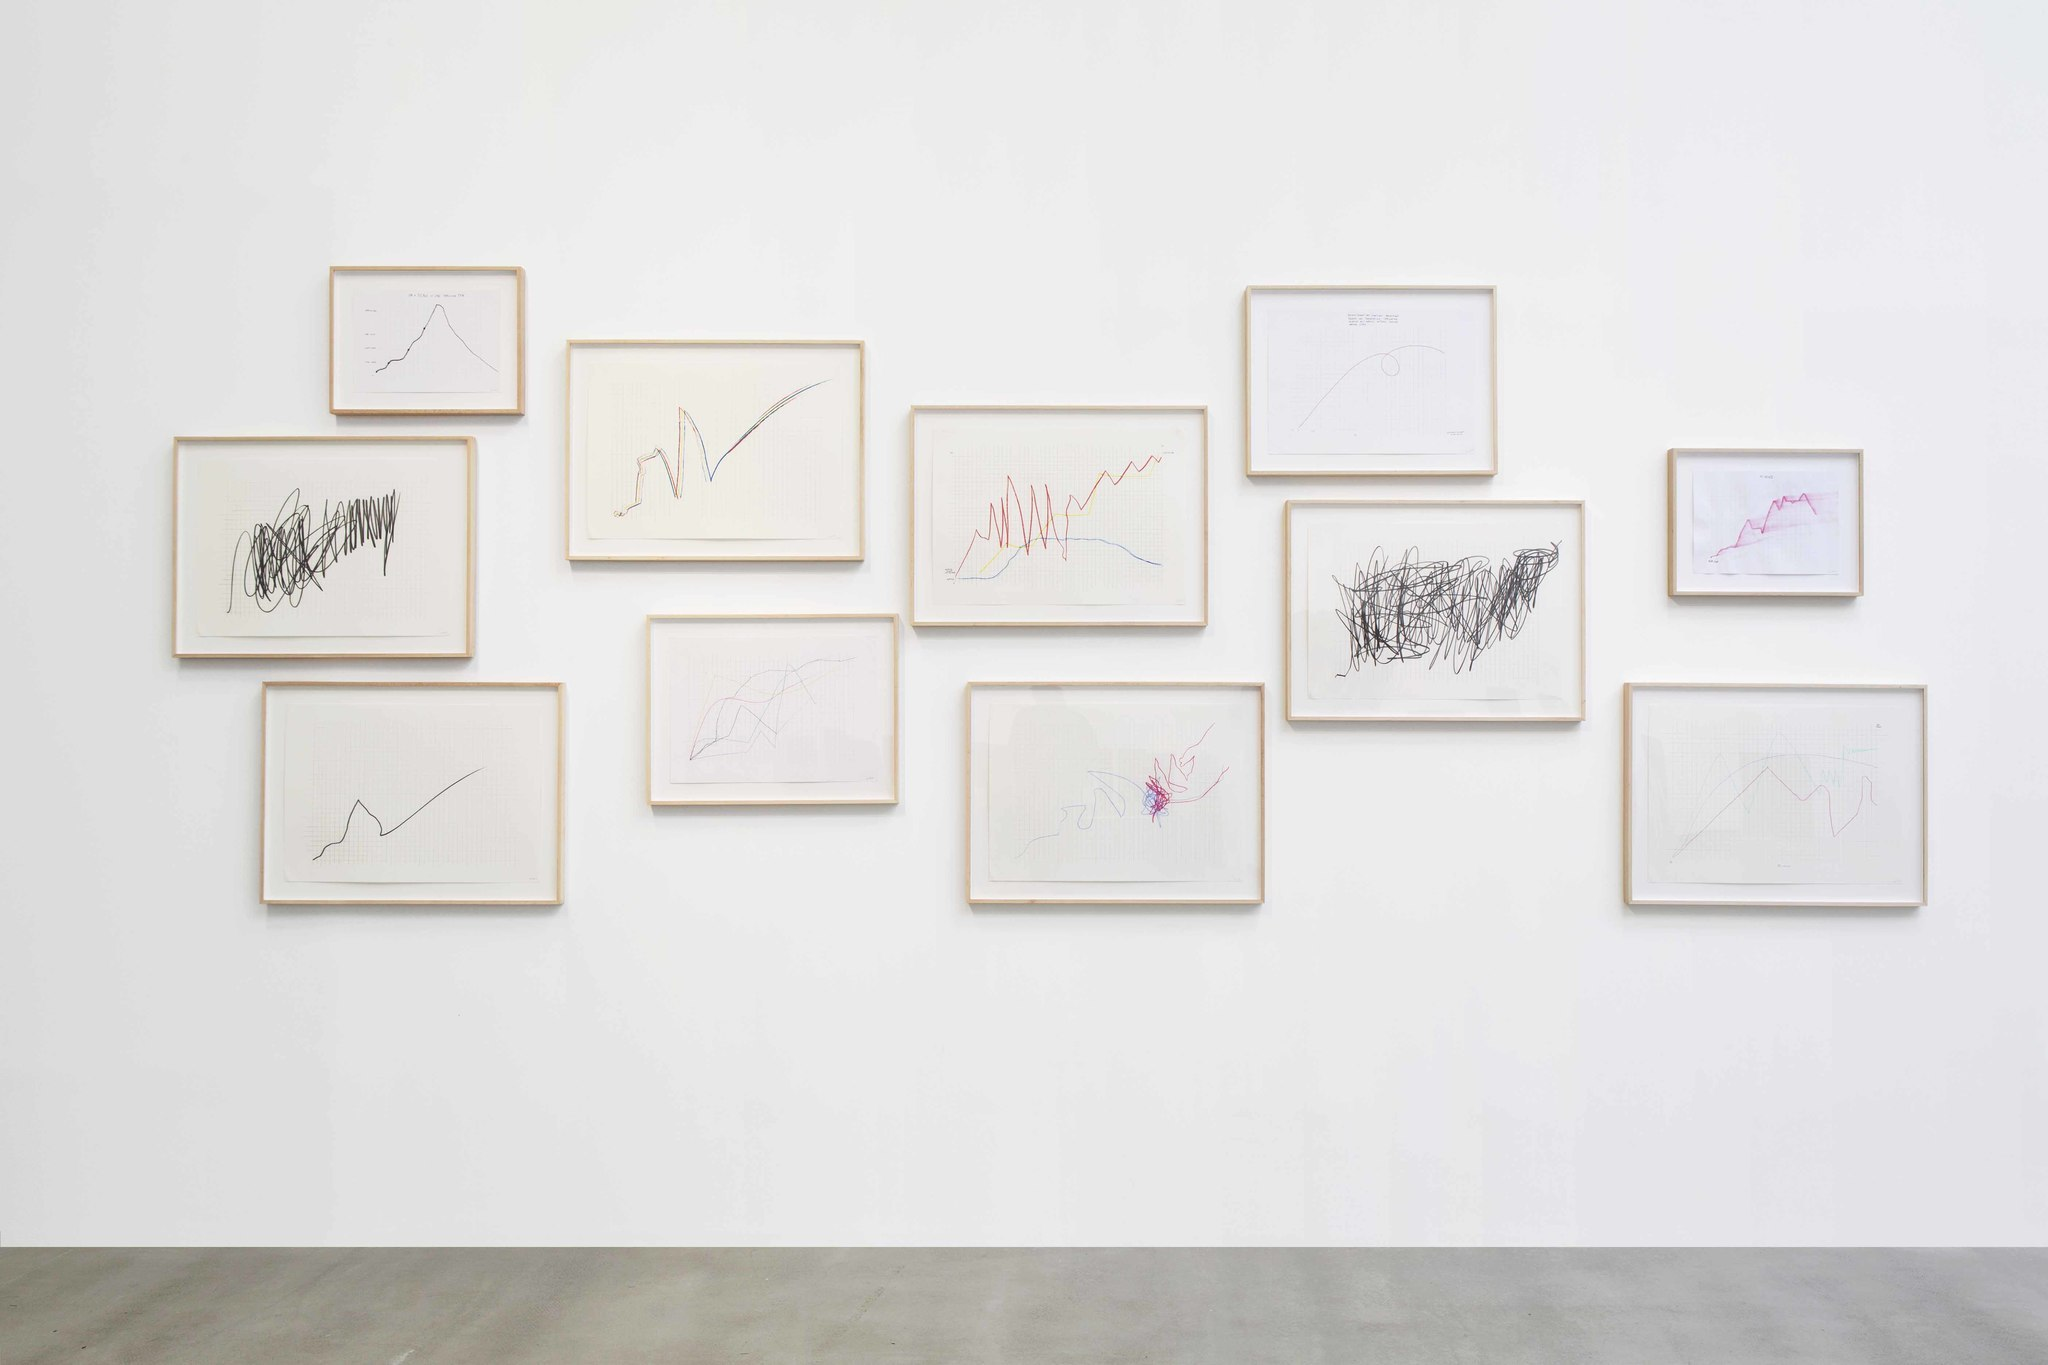 """Jimmie Durham, """"Untitled (On a Scale of One Through Ten),"""" 2013, graphite on paper."""